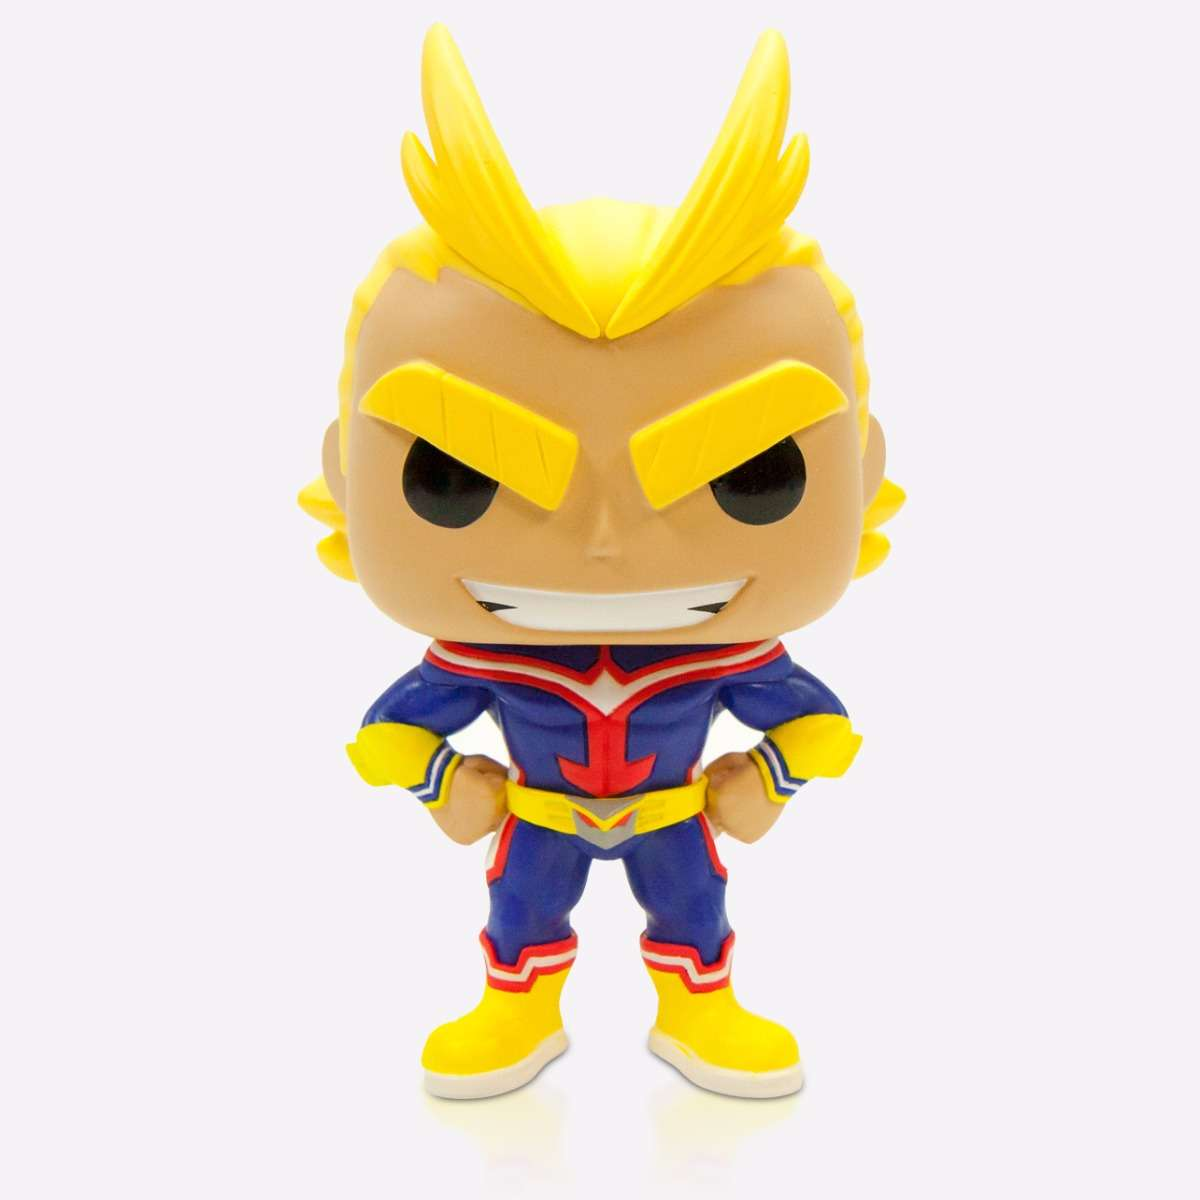 Funko Pop - All Might  Figures & Collectibles